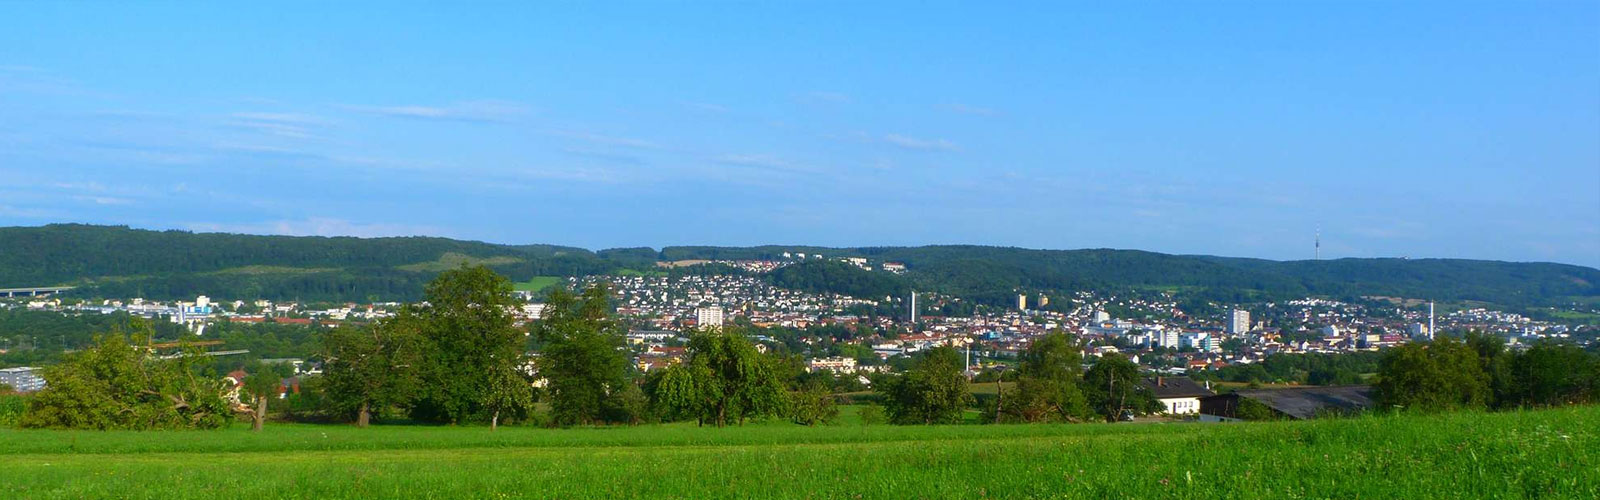 Lörrach Panorama